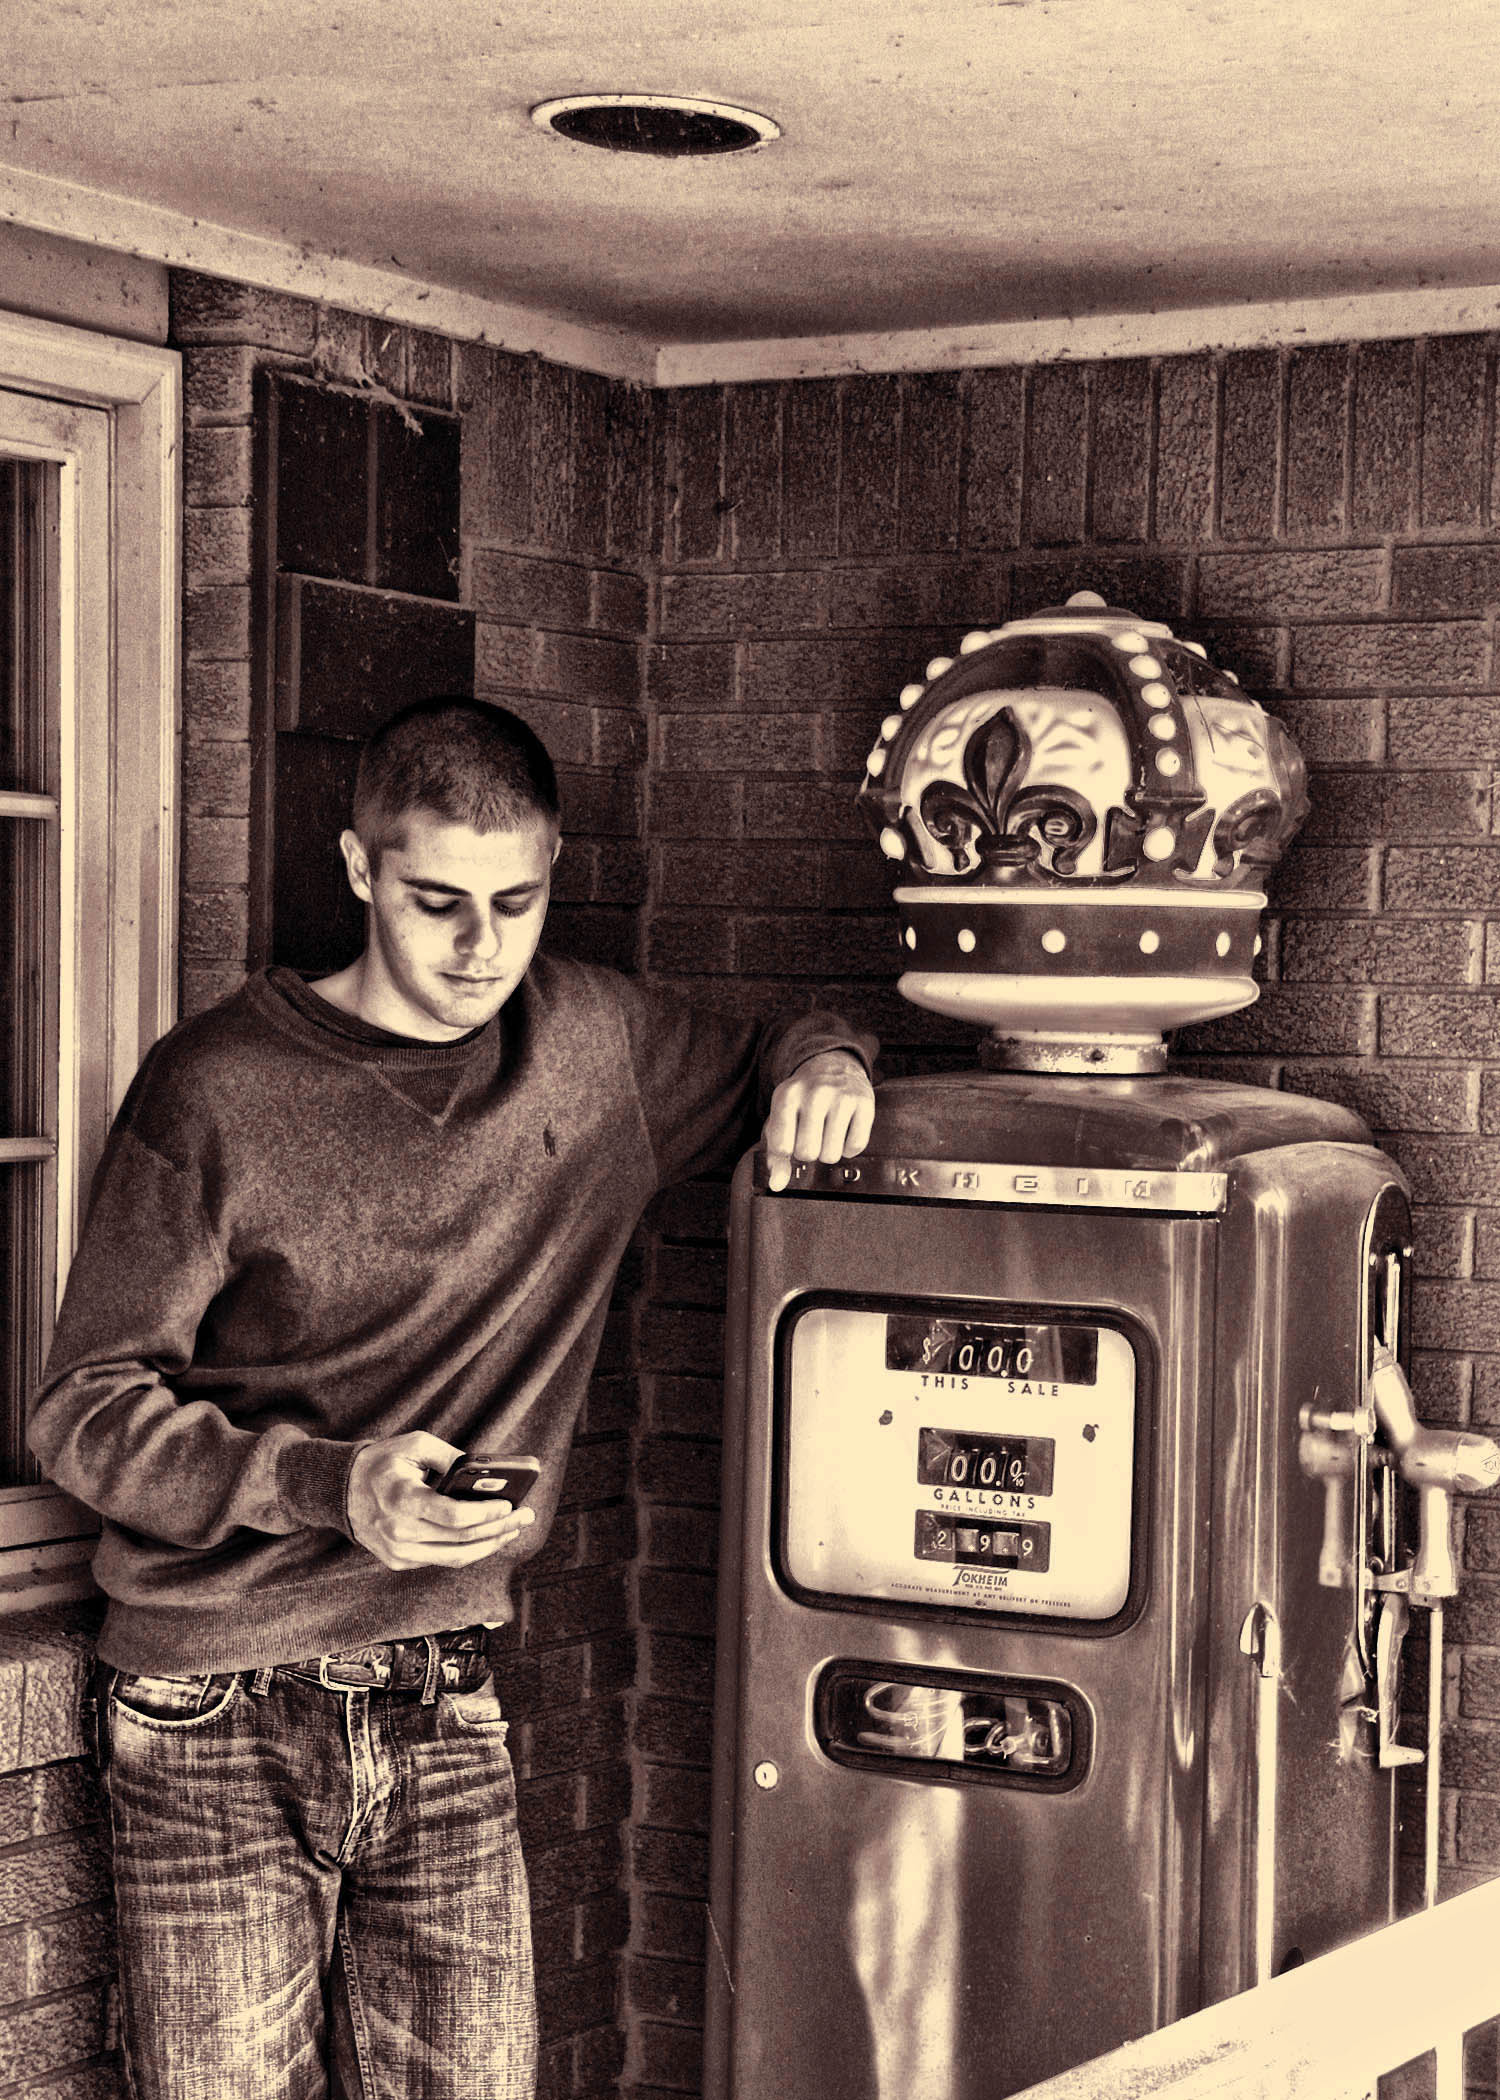 BRUCE_15_NEXT_TO_GAS_PUMP_IN_SEPIA_FORMAT_copy